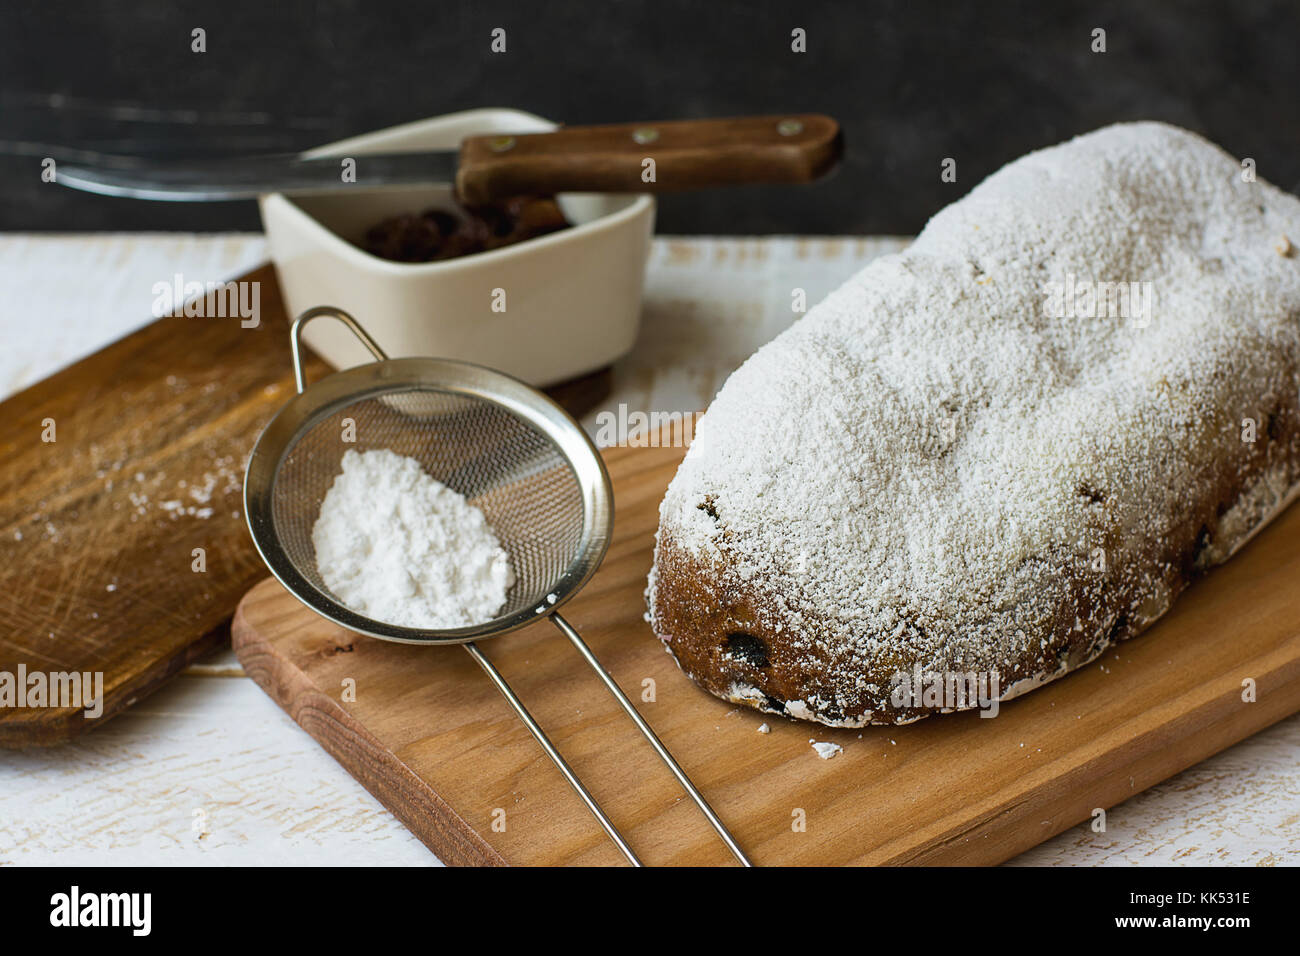 Homemade Whole Christmas Stollen on Wood Cutting Board Sieve with Powder Knife Ingredients Rustic Kitchen Interior - Stock Image